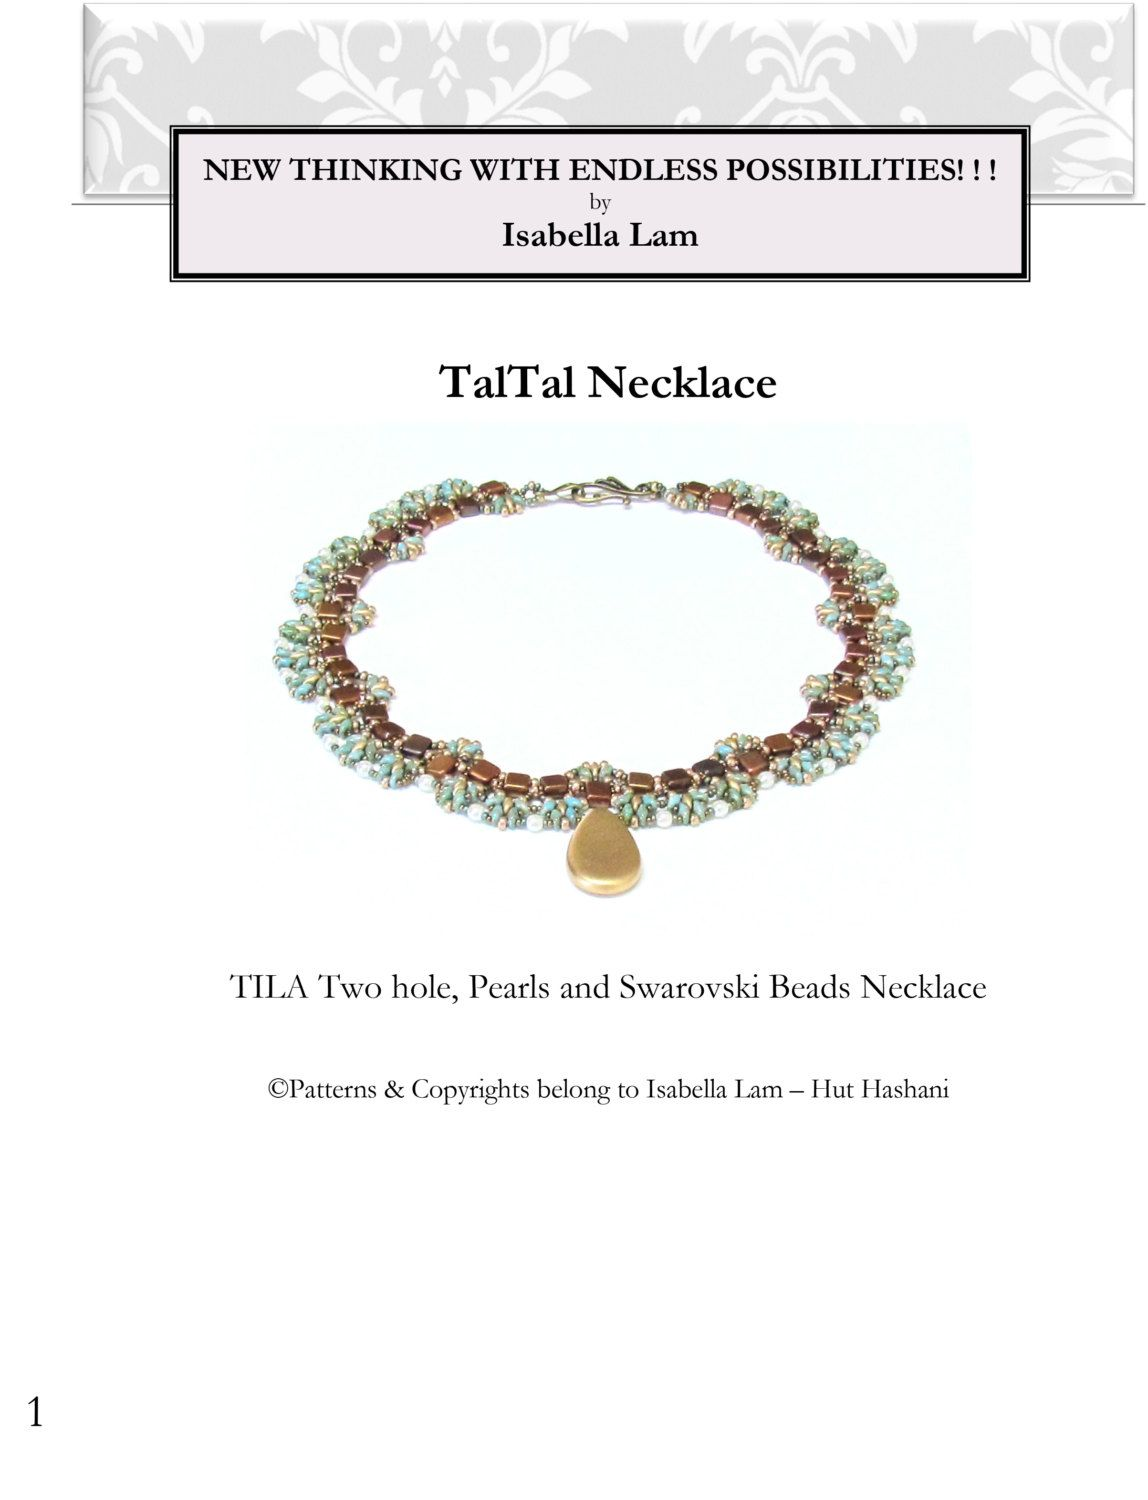 TalTal SuperDuoand Czech Mates Beadwork Necklace Pdf by bead4me